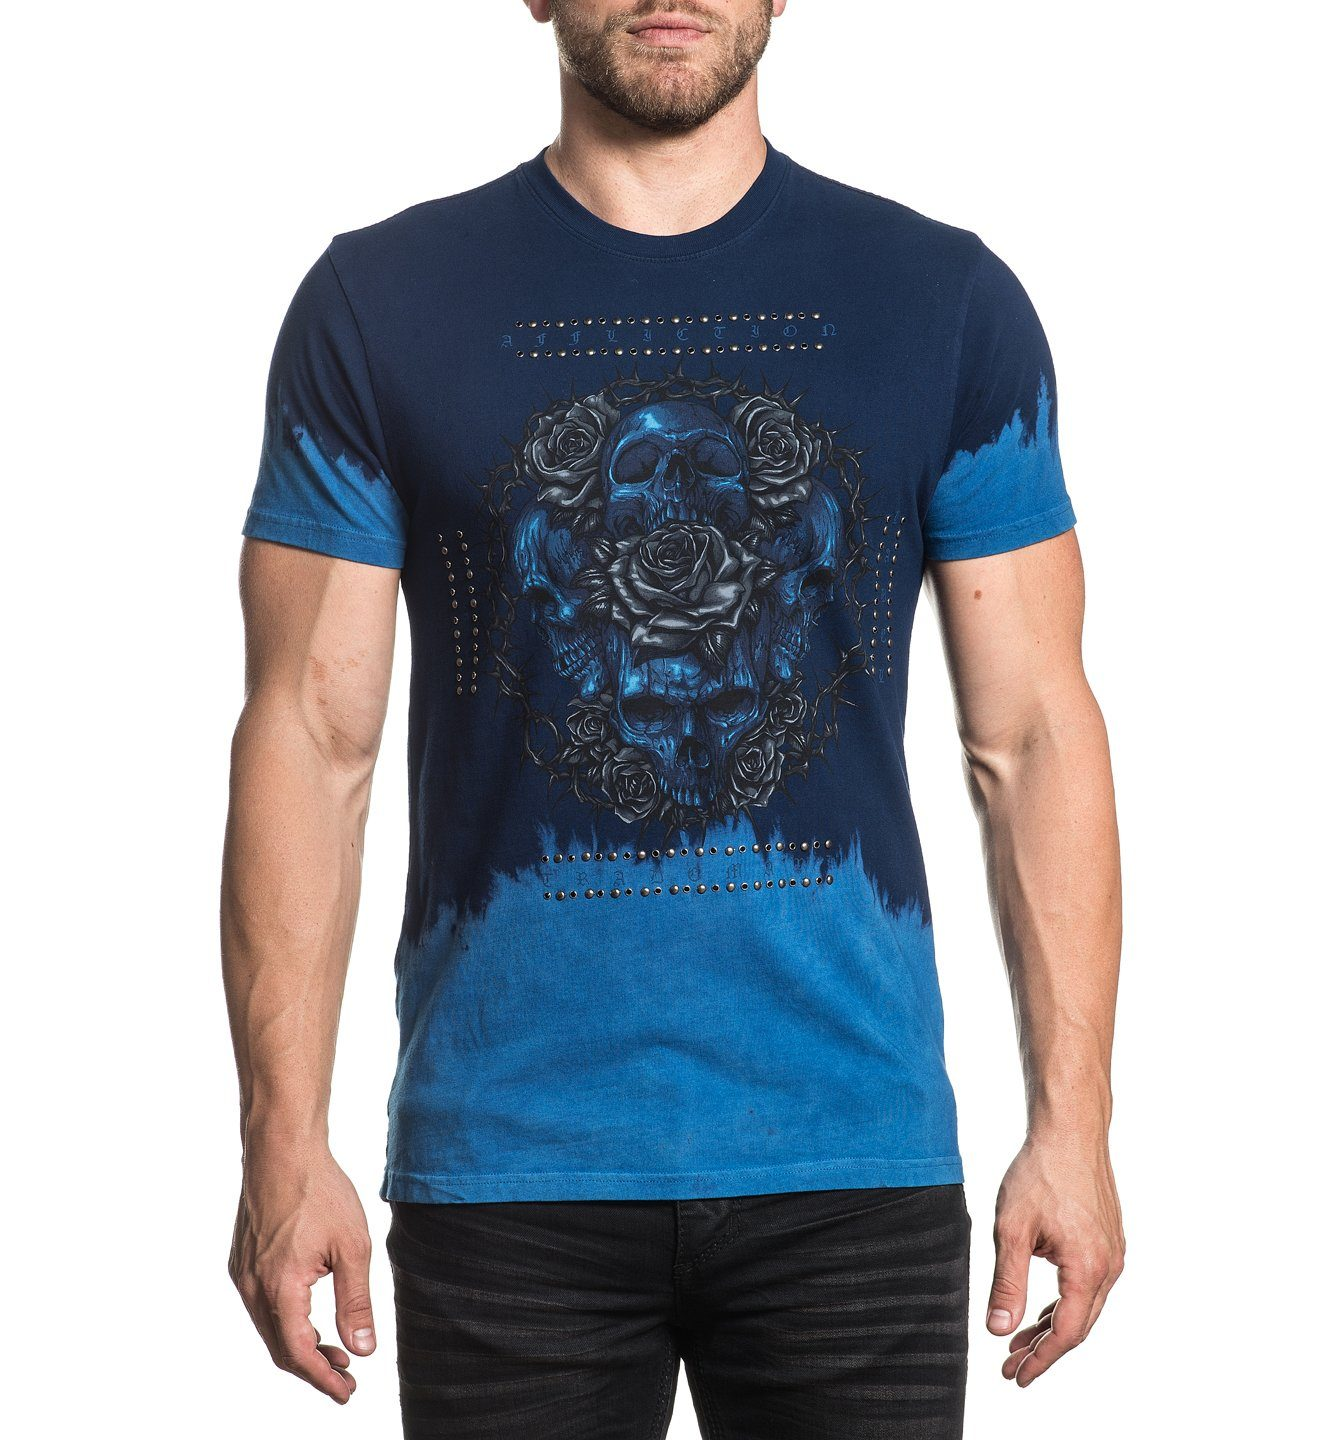 Forged In Oceans - Mens Short Sleeve Tees - Affliction Clothing